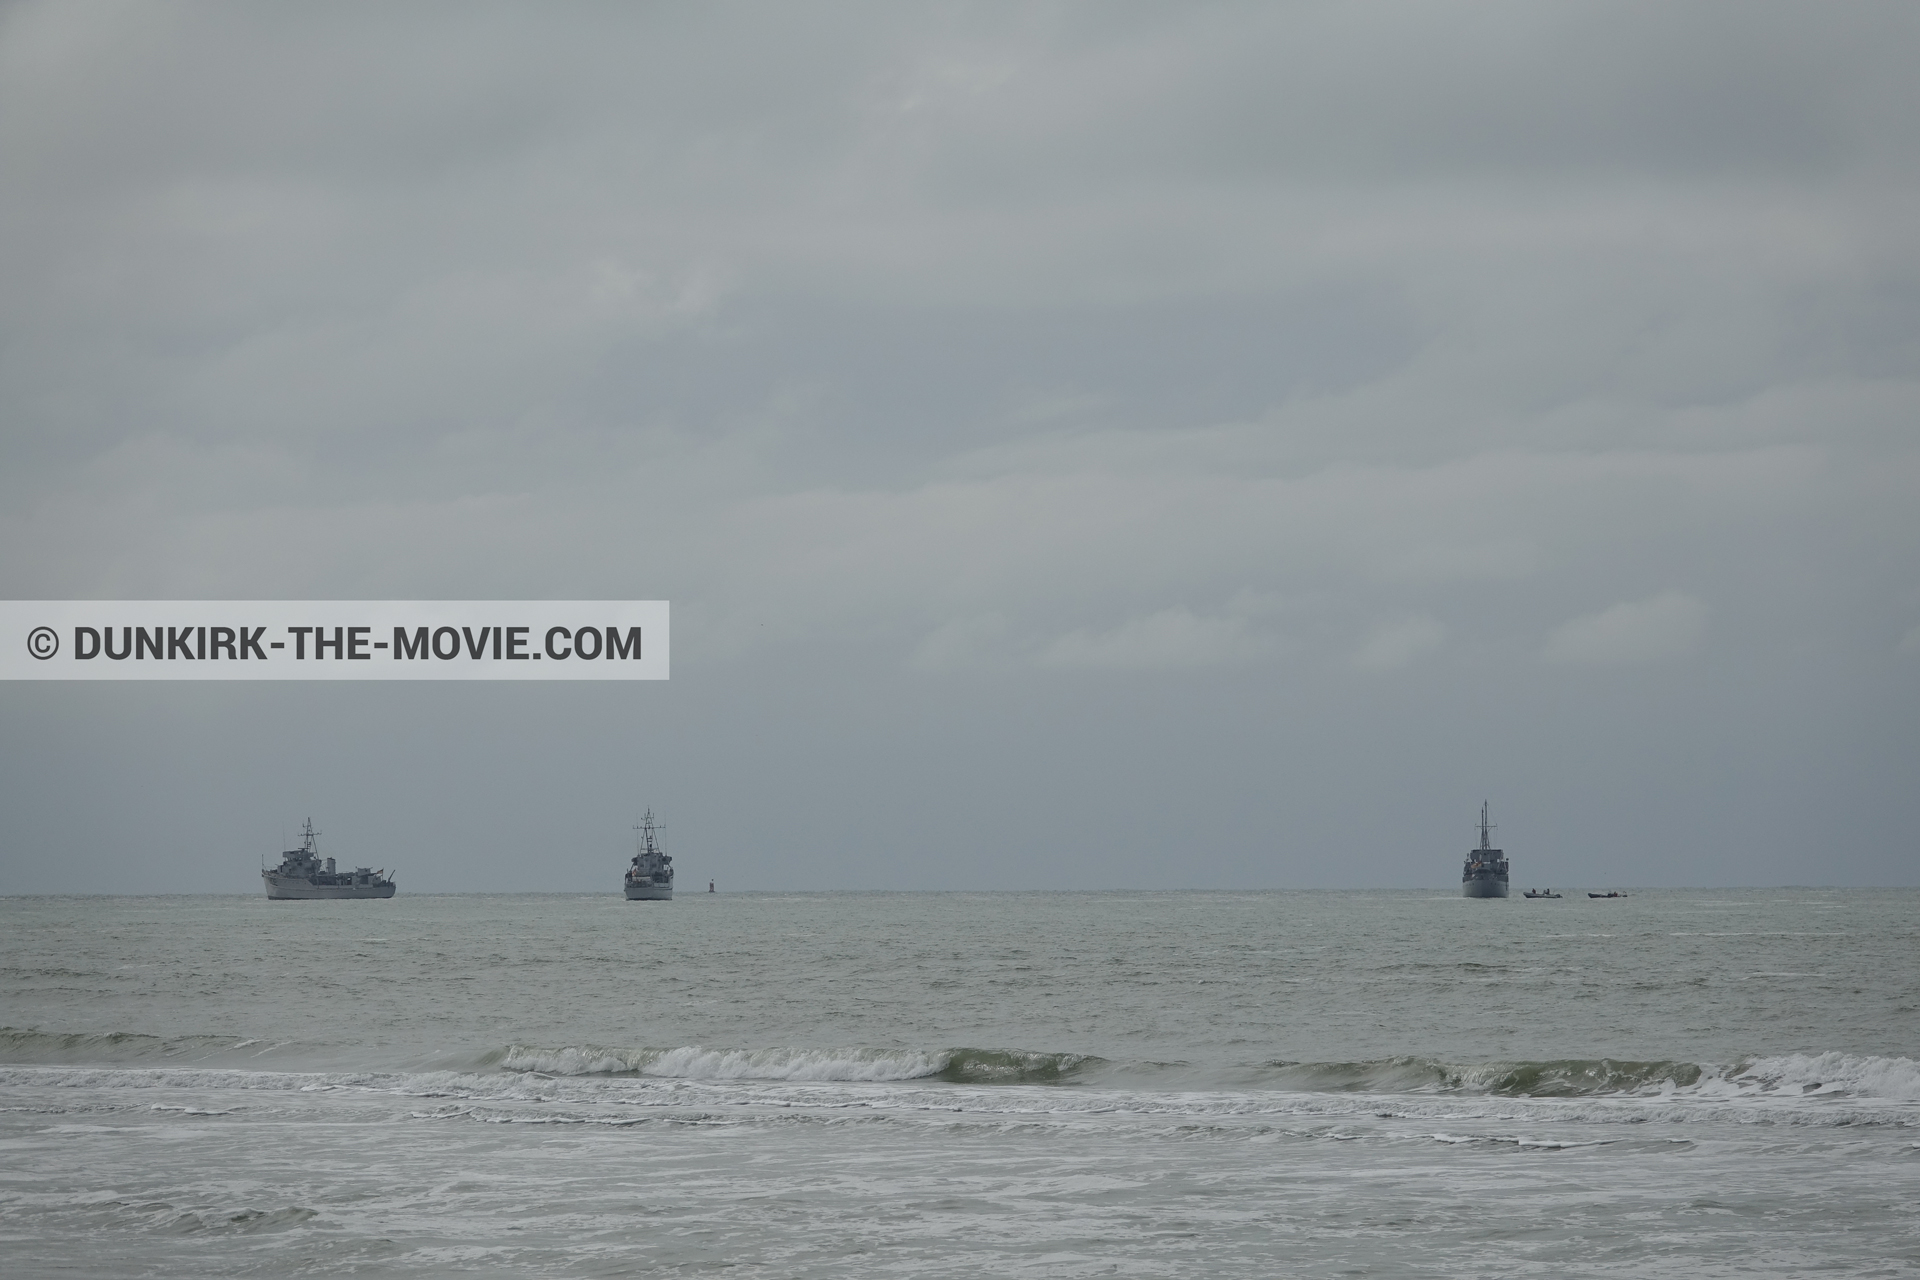 Picture with boat, cloudy sky,  from behind the scene of the Dunkirk movie by Nolan